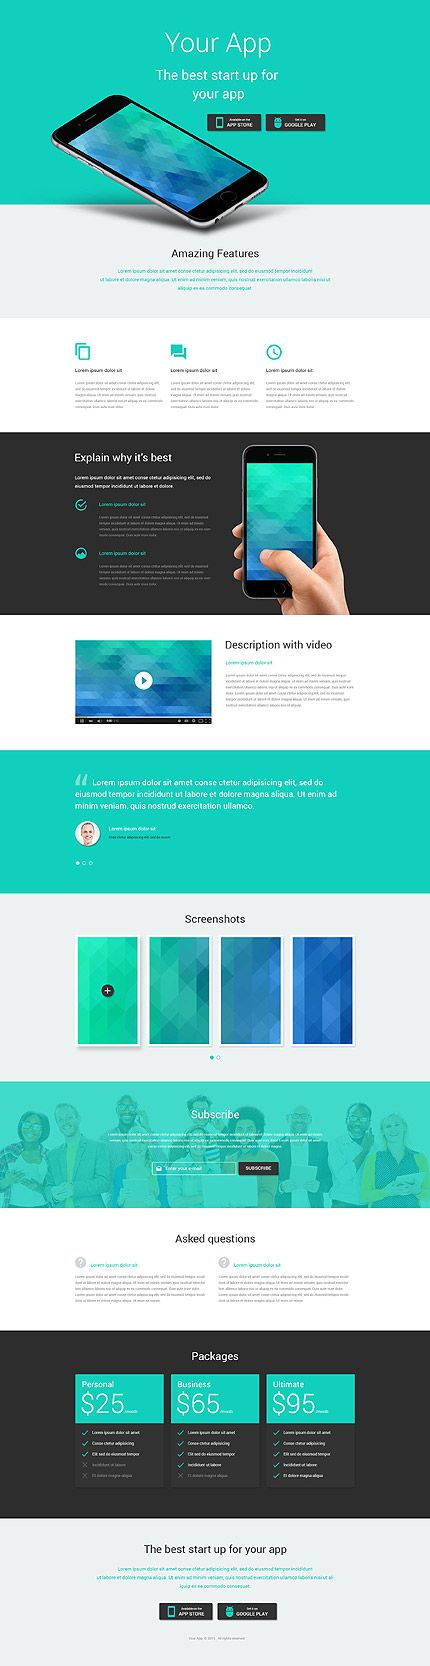 Template 53973 - Your Apps  Responsive Landing Page Template